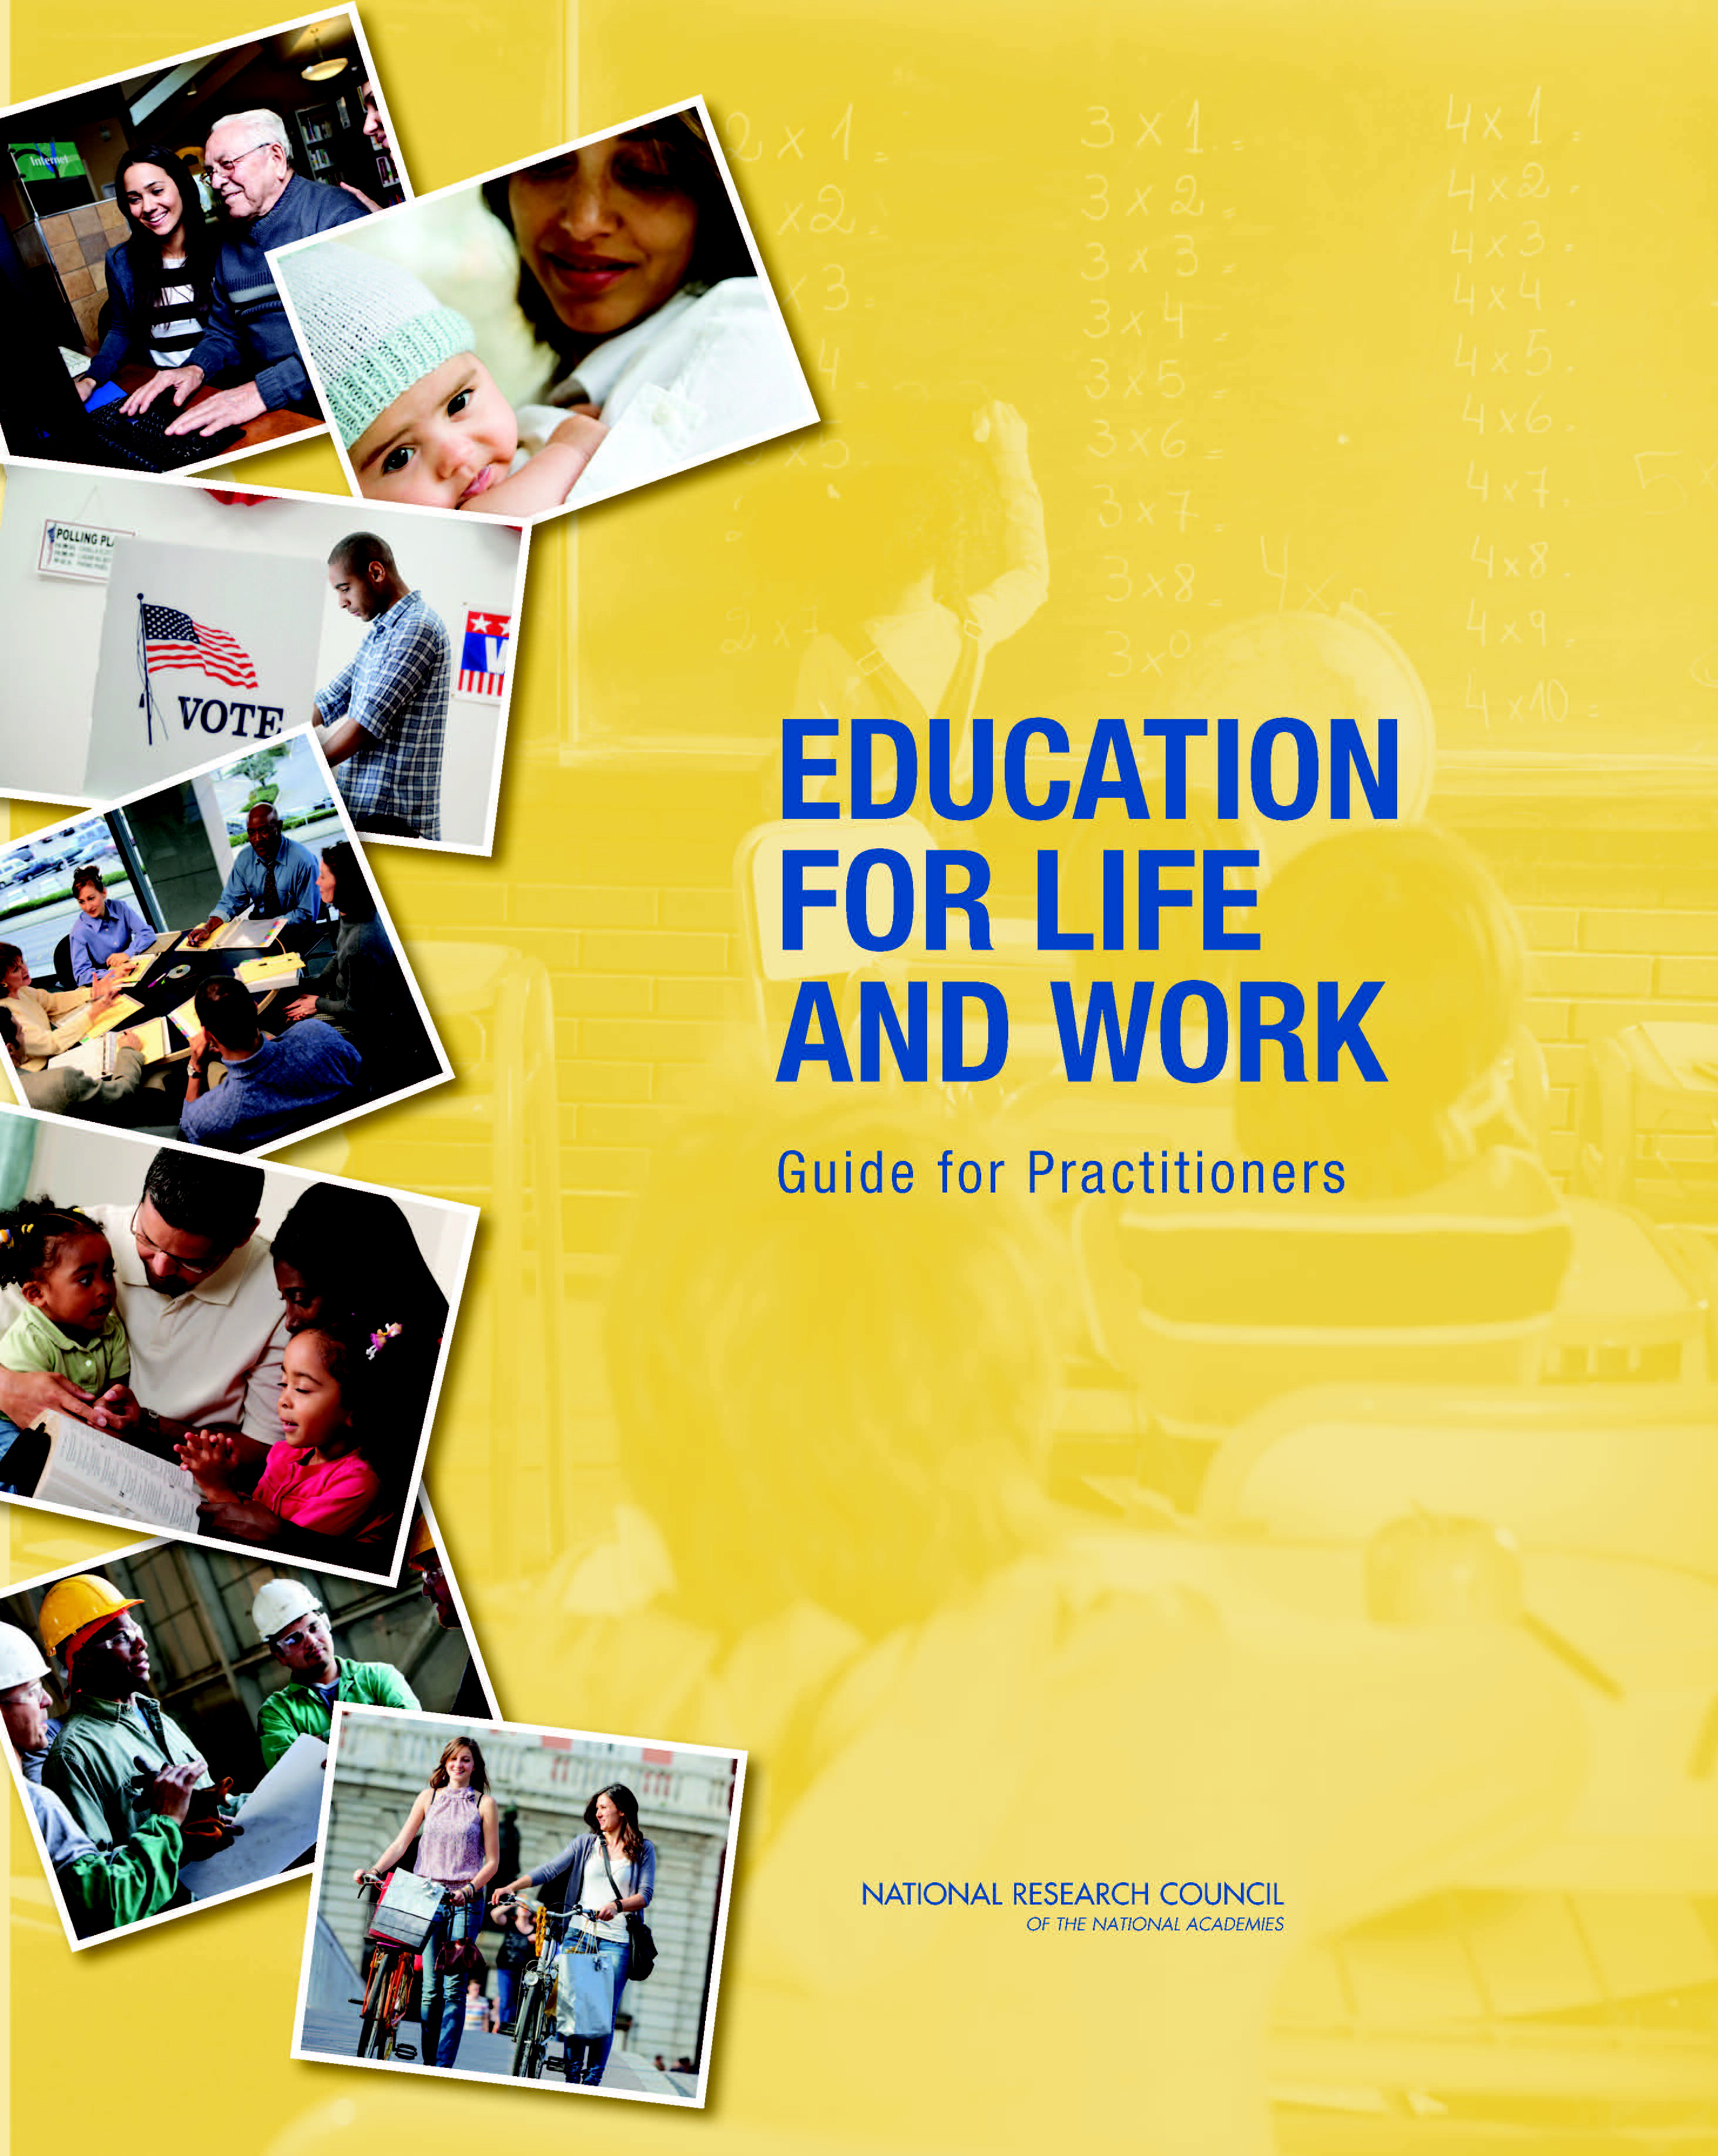 Education for Life and Work Practitioner Guide